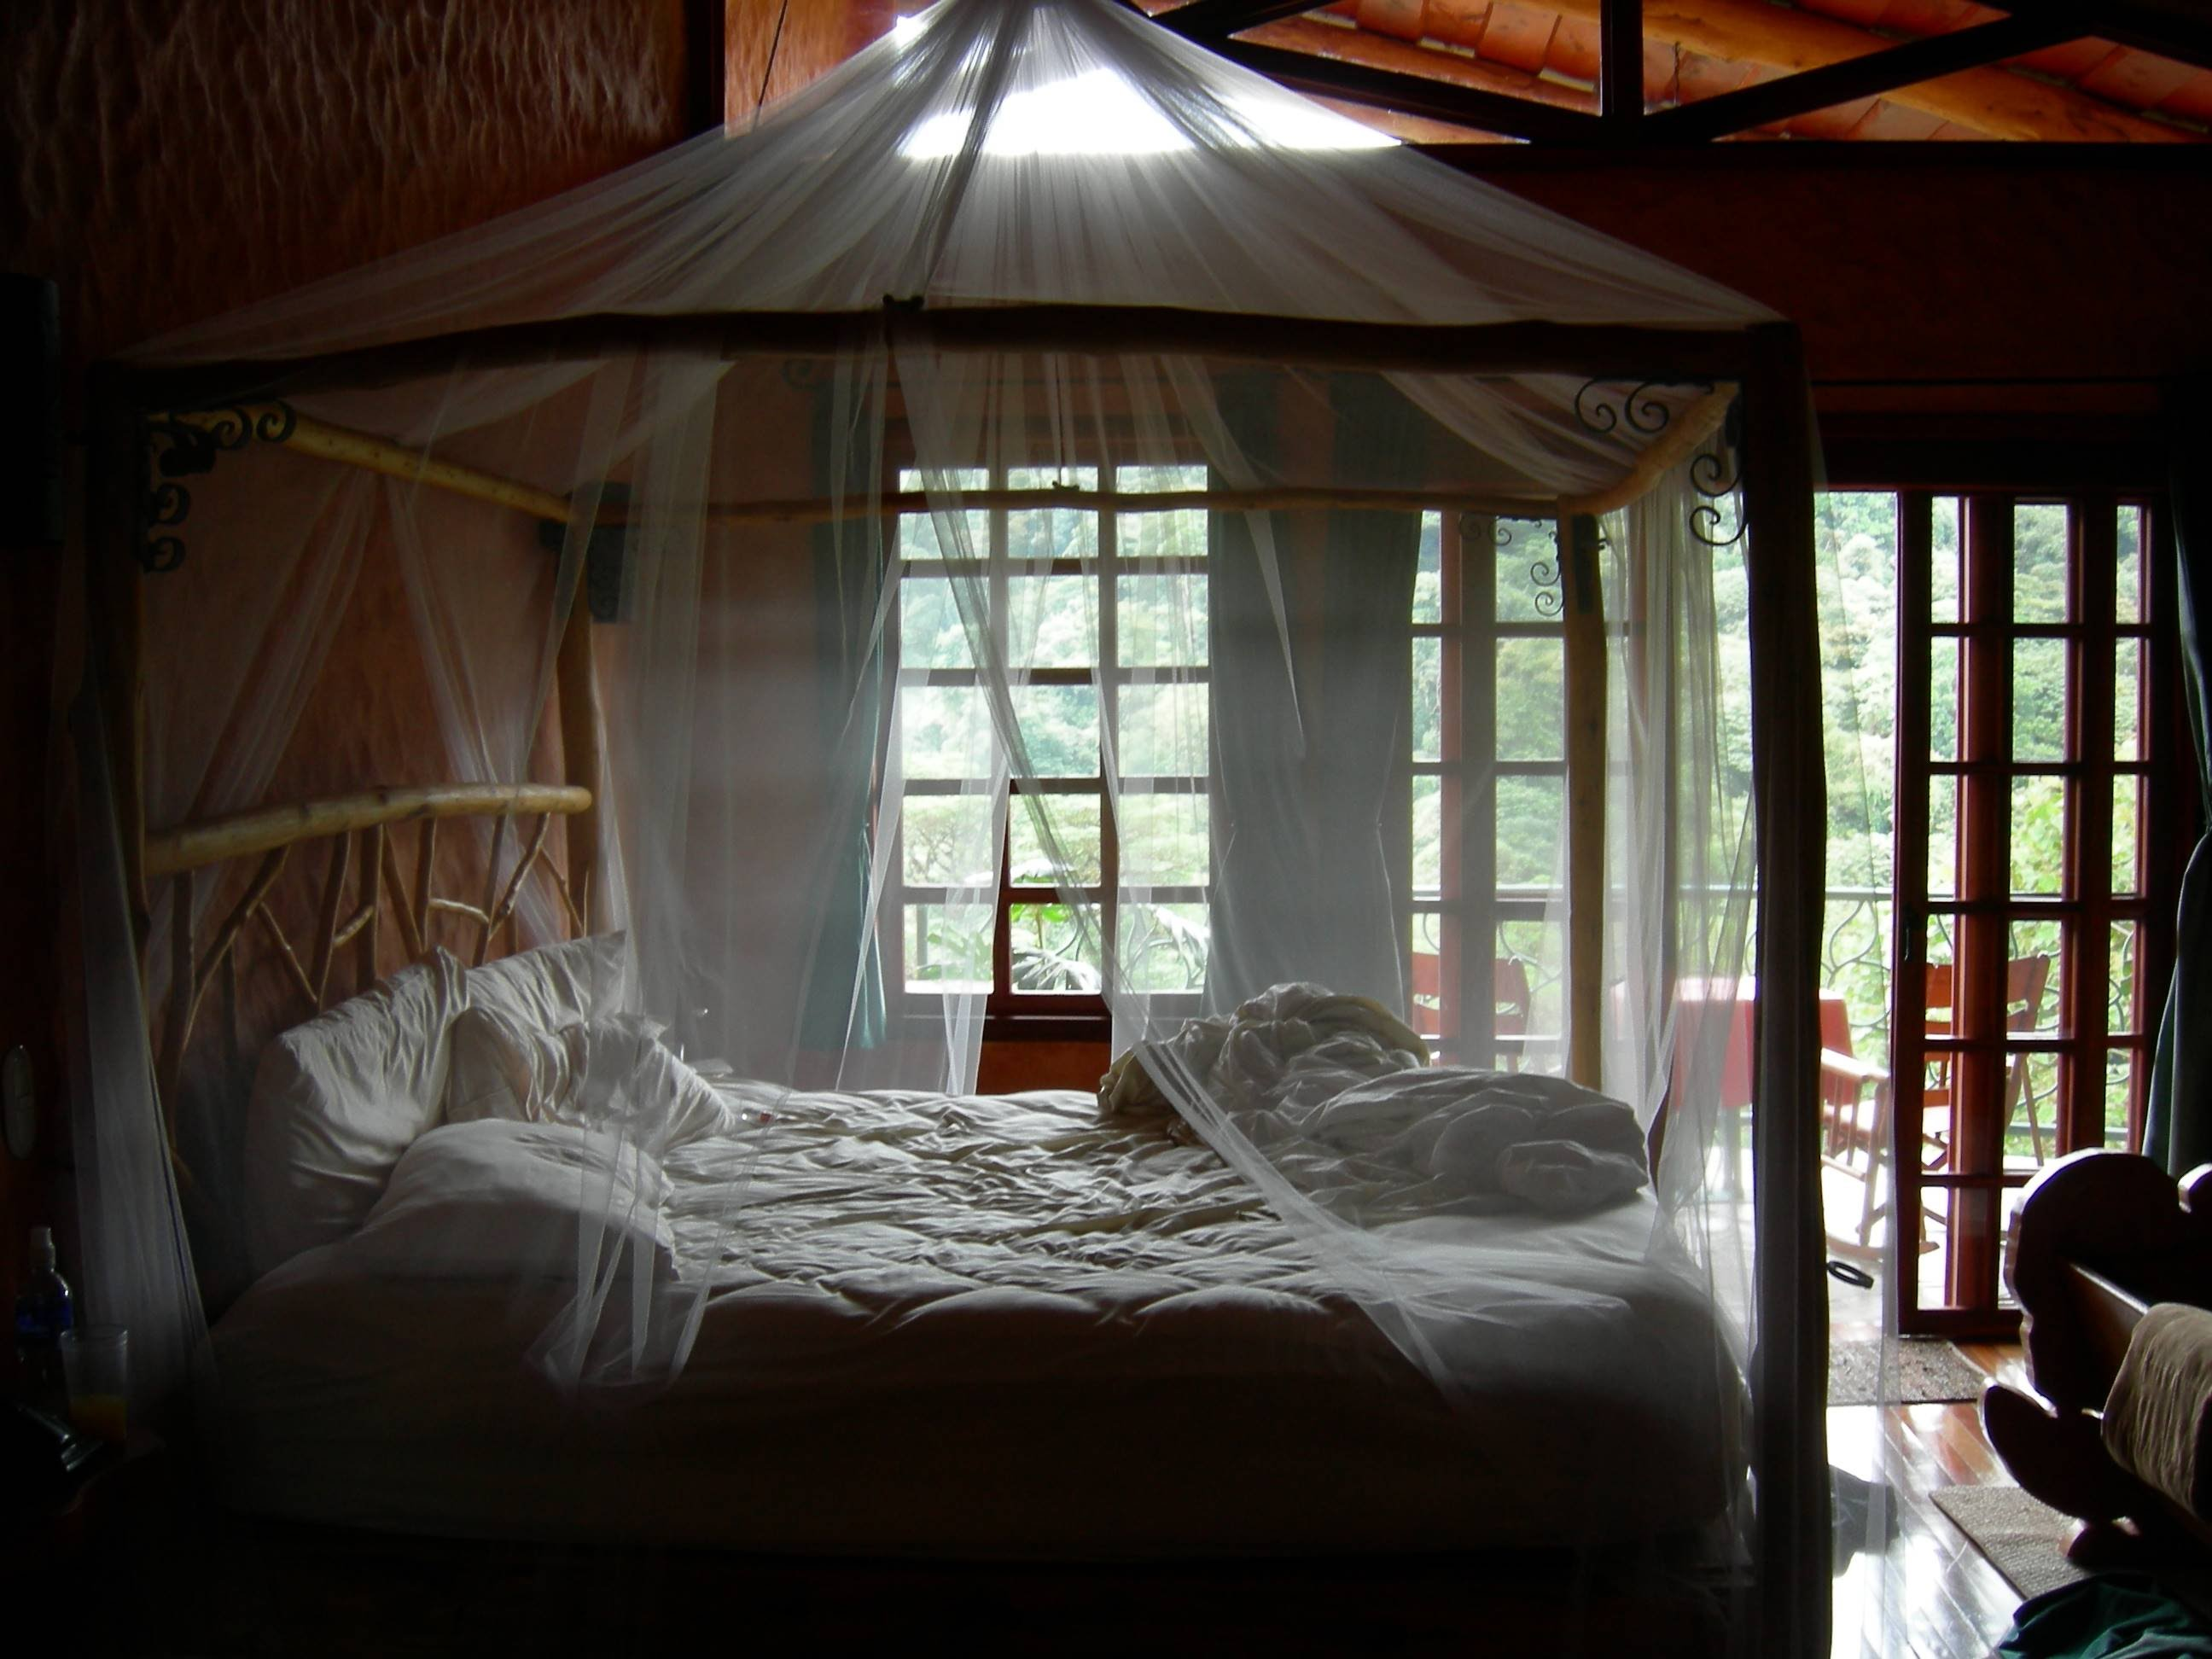 Luxury View of the awesome King Size Canopy Bed